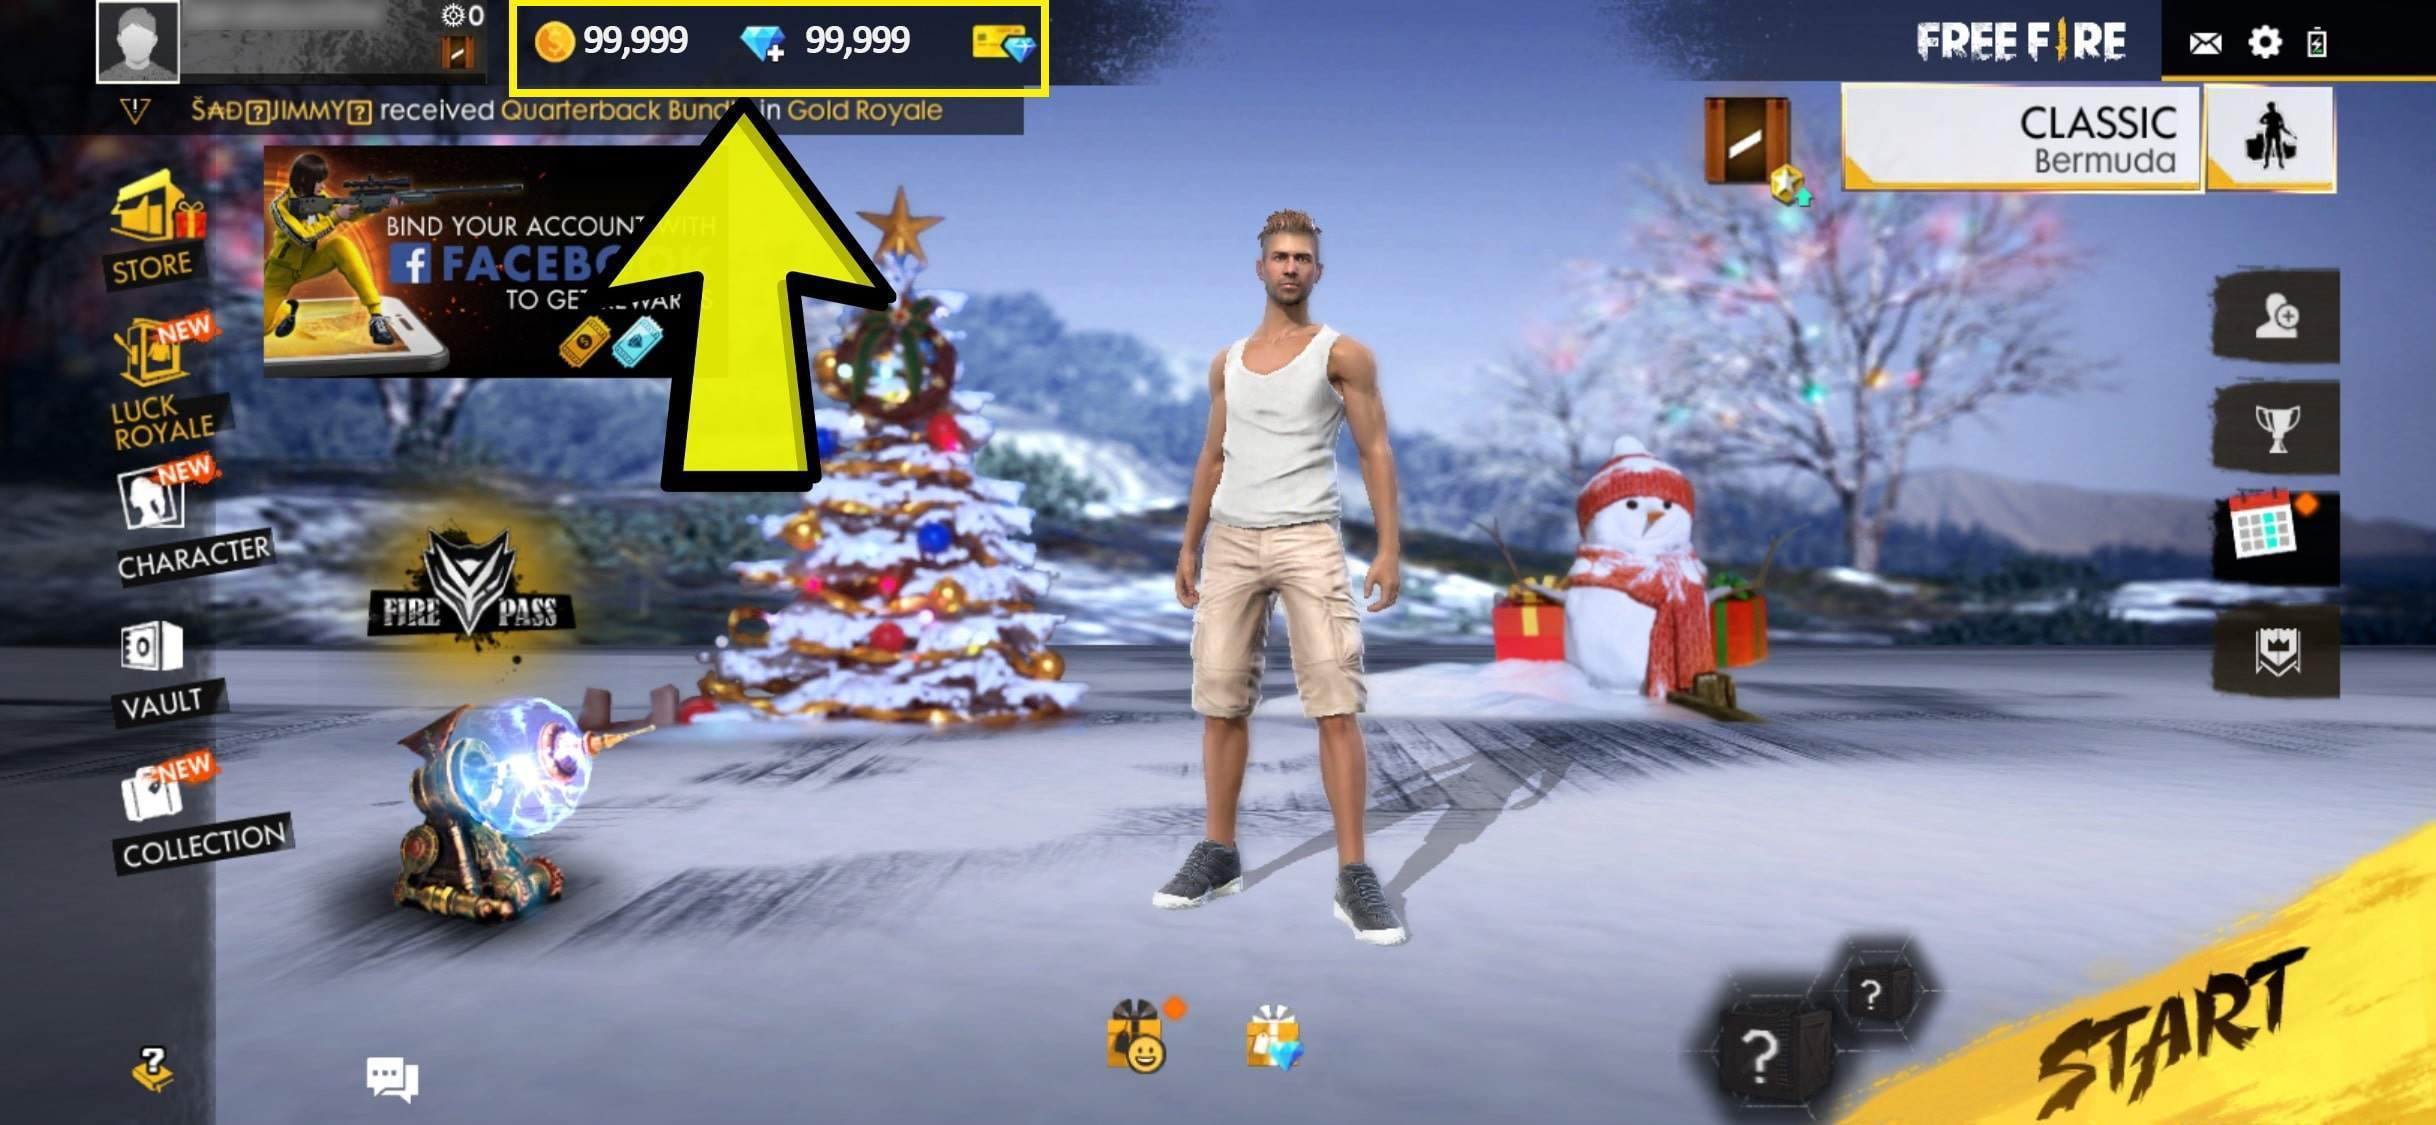 Claim Freefire Unlimited Coins and Diamonds For Free! Working [October 2020]